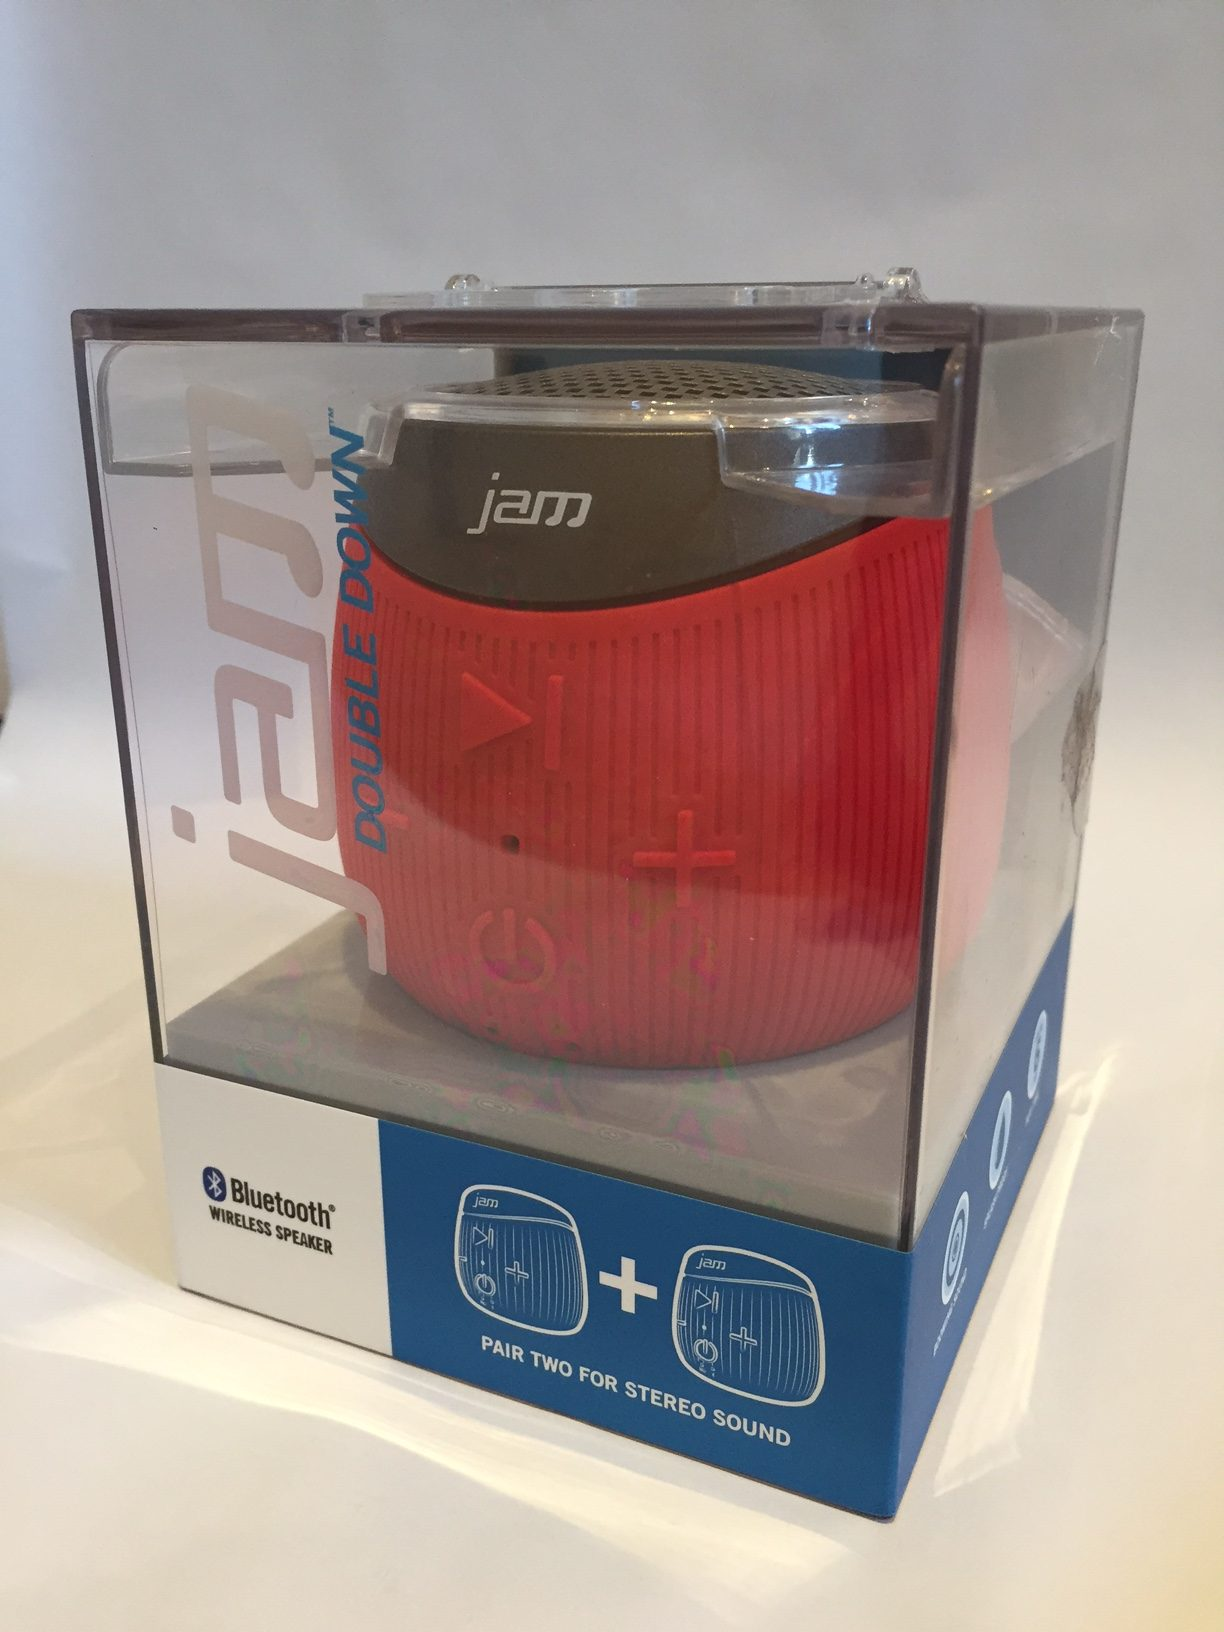 Jam Double Down Bluetooth Speaker Review // TechNuovo.com